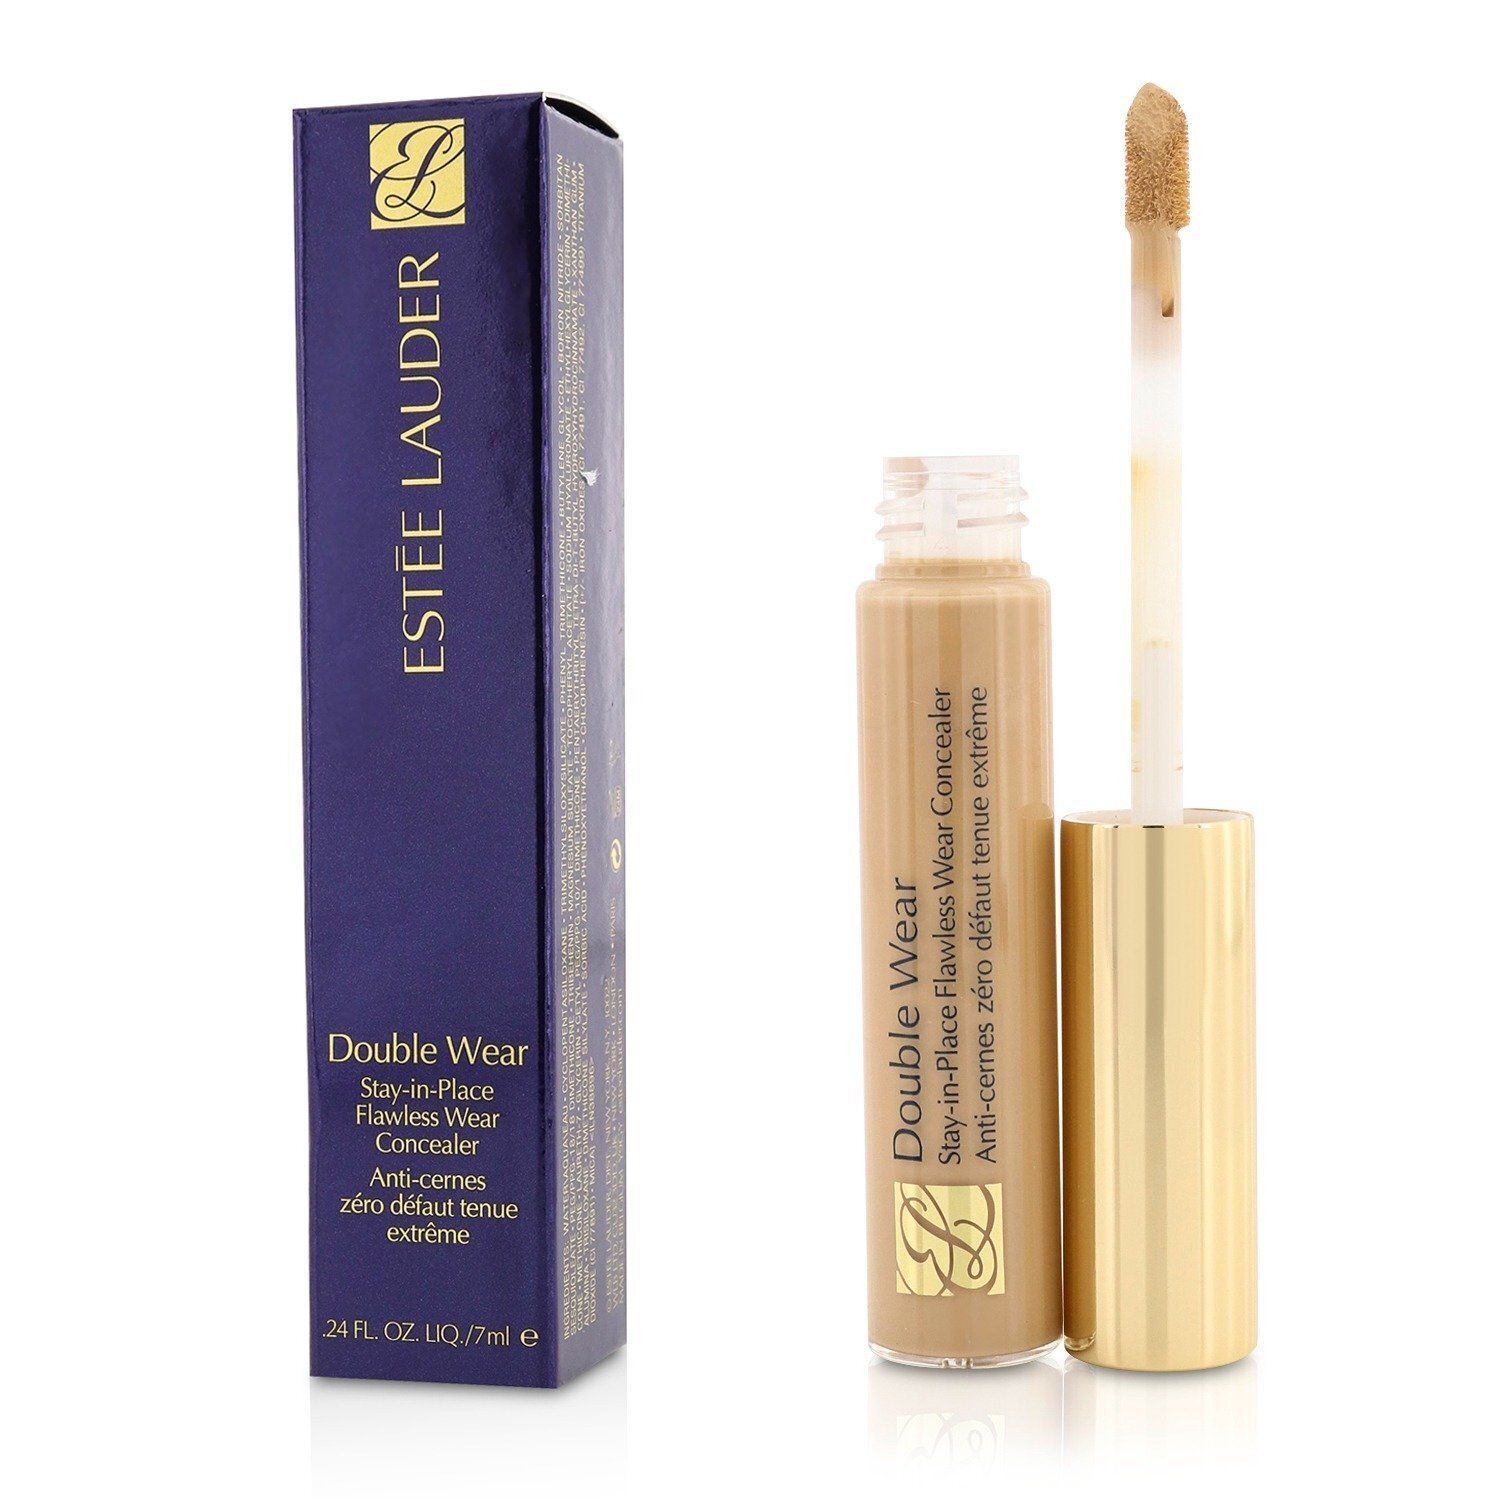 Estee-Lauder-Double-Wear-Stay-In-Place-Flawless-Wear-Concealer